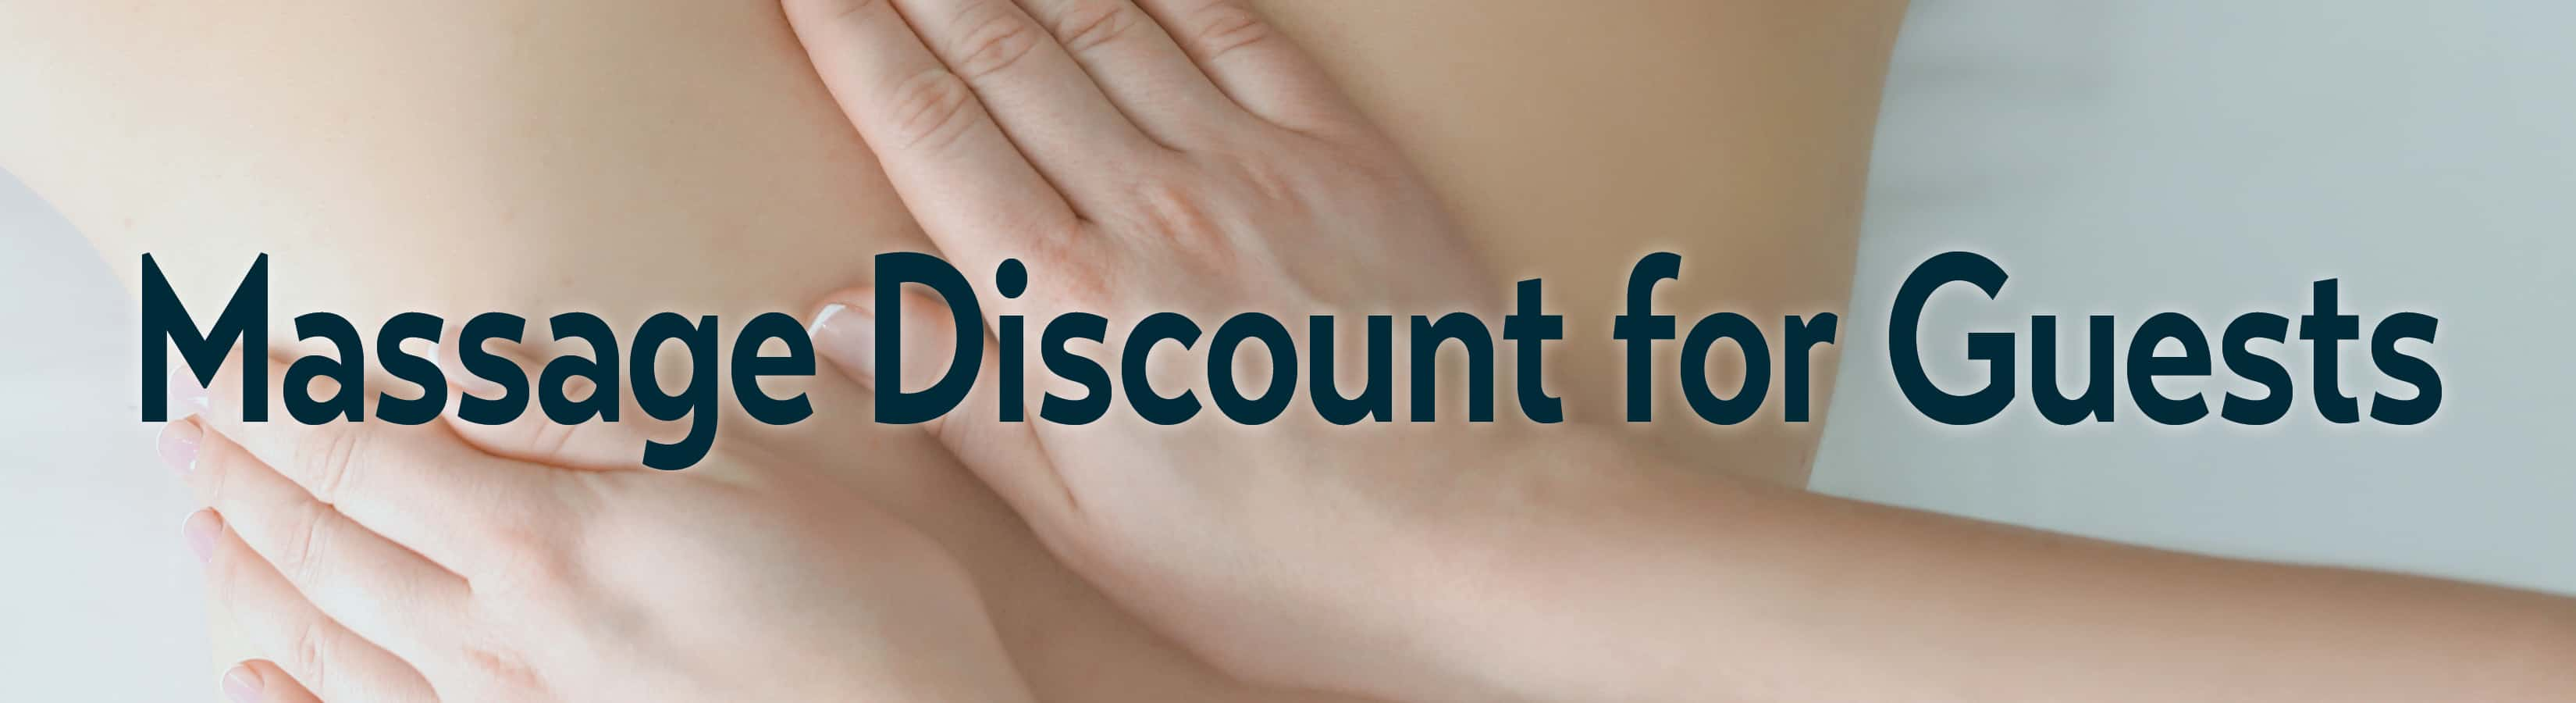 massage discount for guests at water street inn